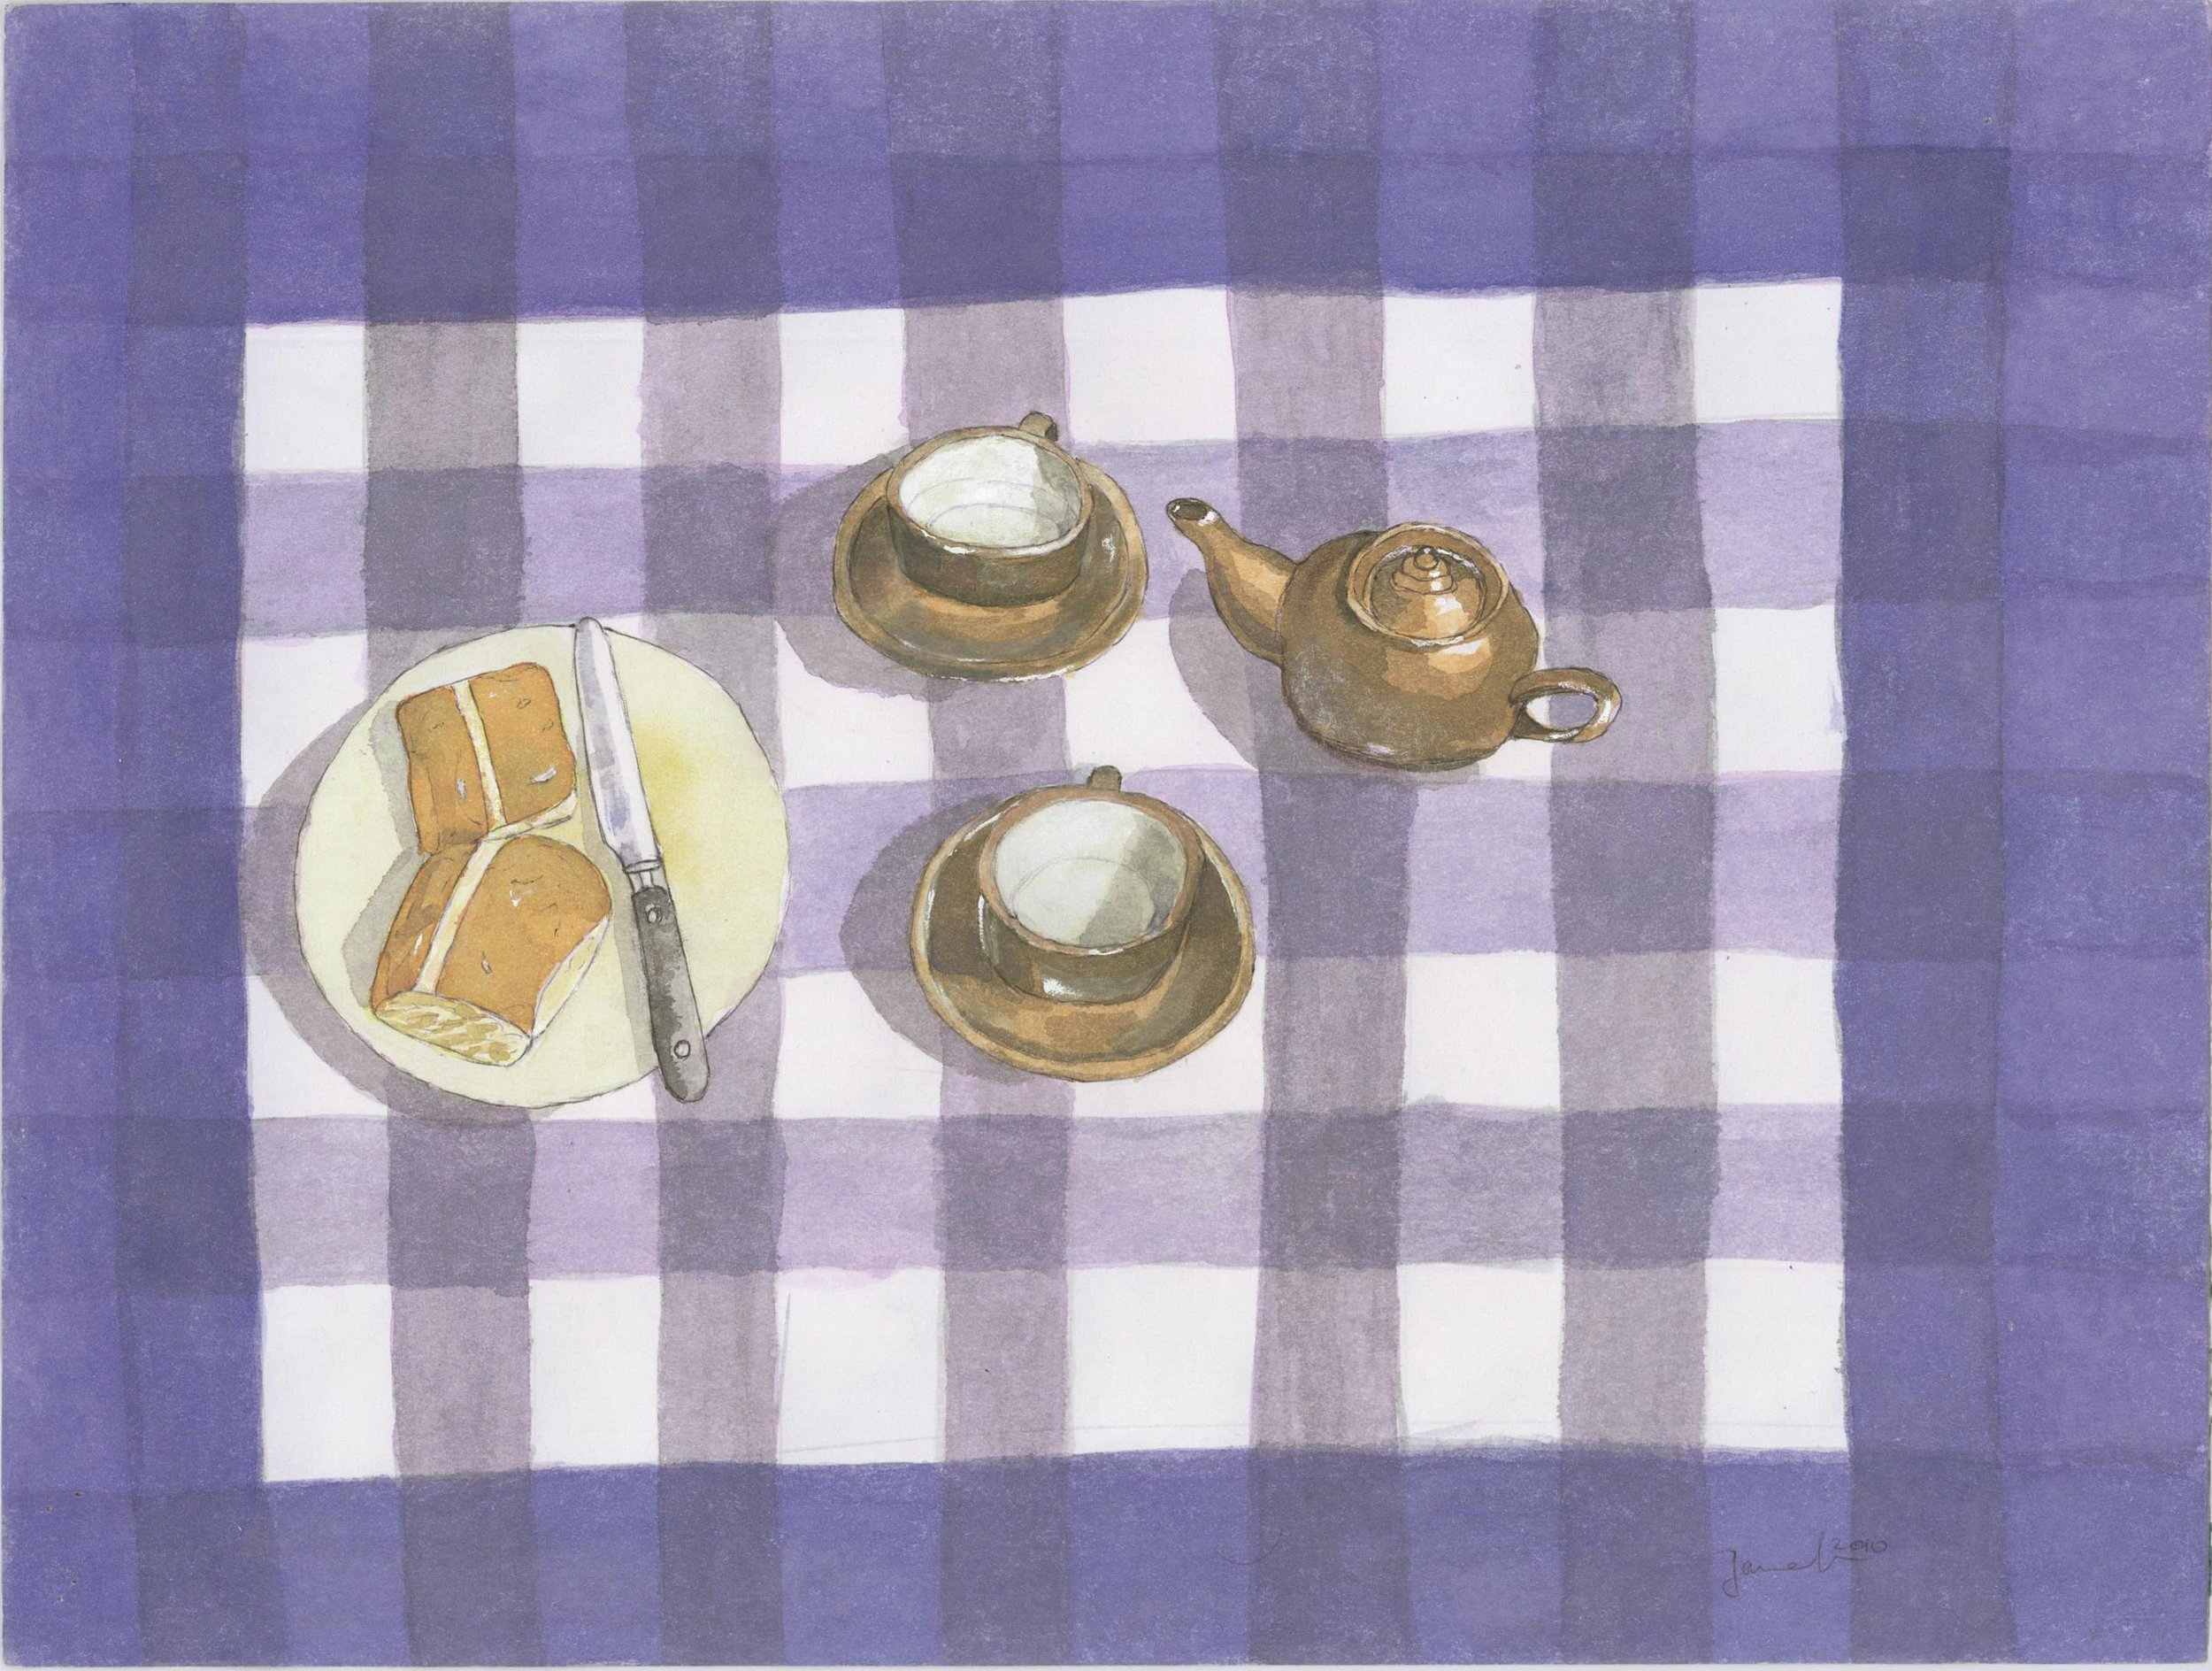 Djamel Ameziane, Tea on a Checkered Cloth, 2010.